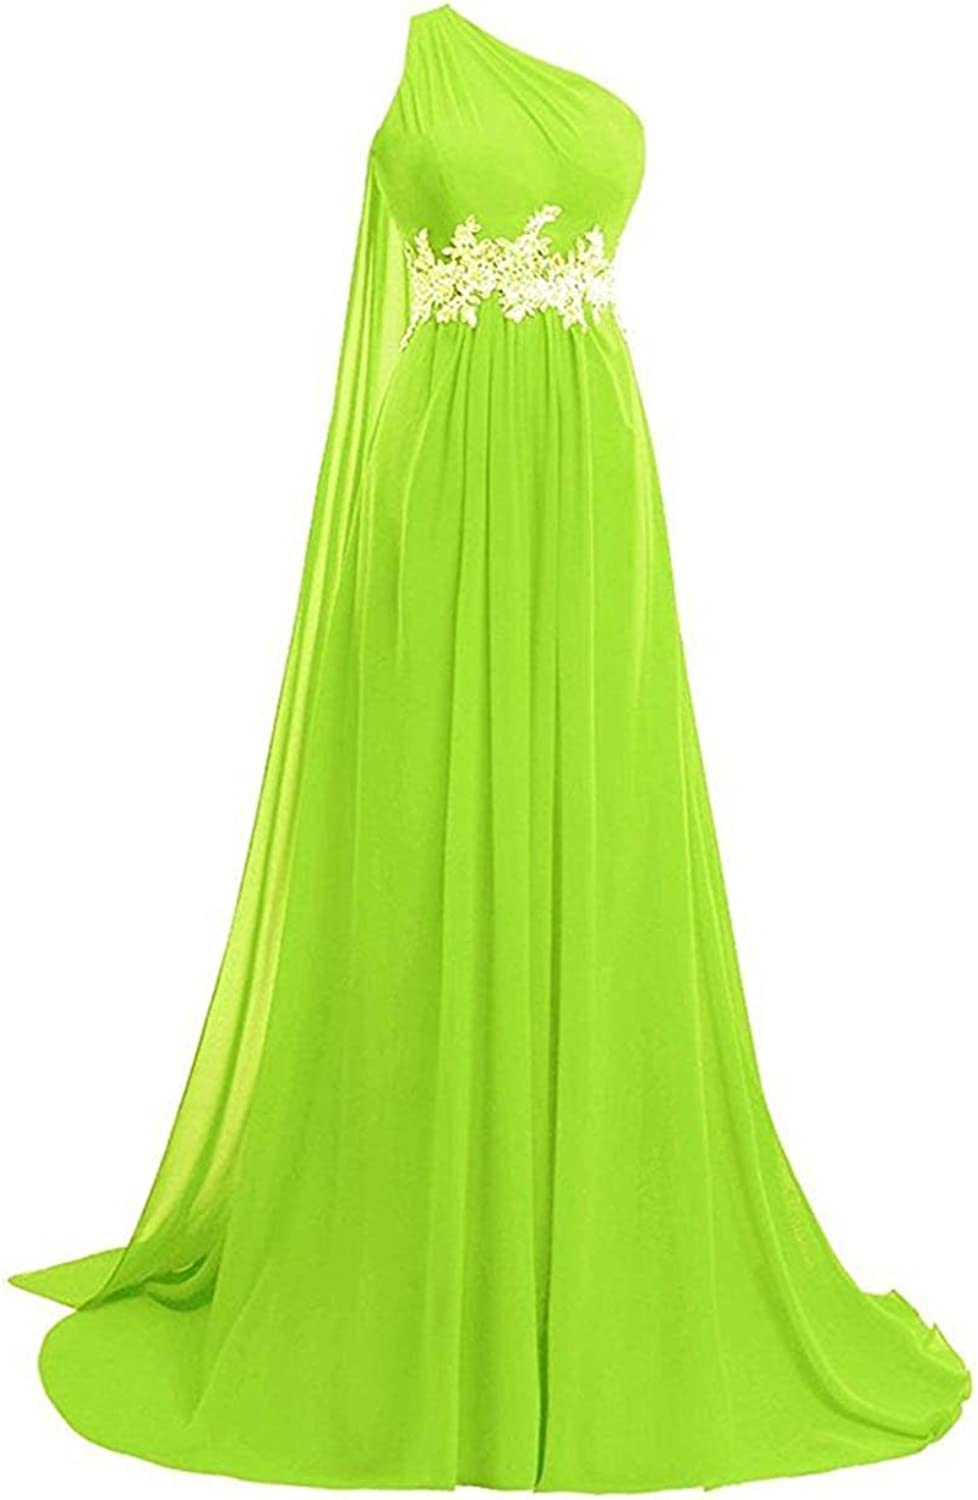 Alilith Z Womens One Shoulder Backless Beaded Rhinestones Long Prom Dresses Evening